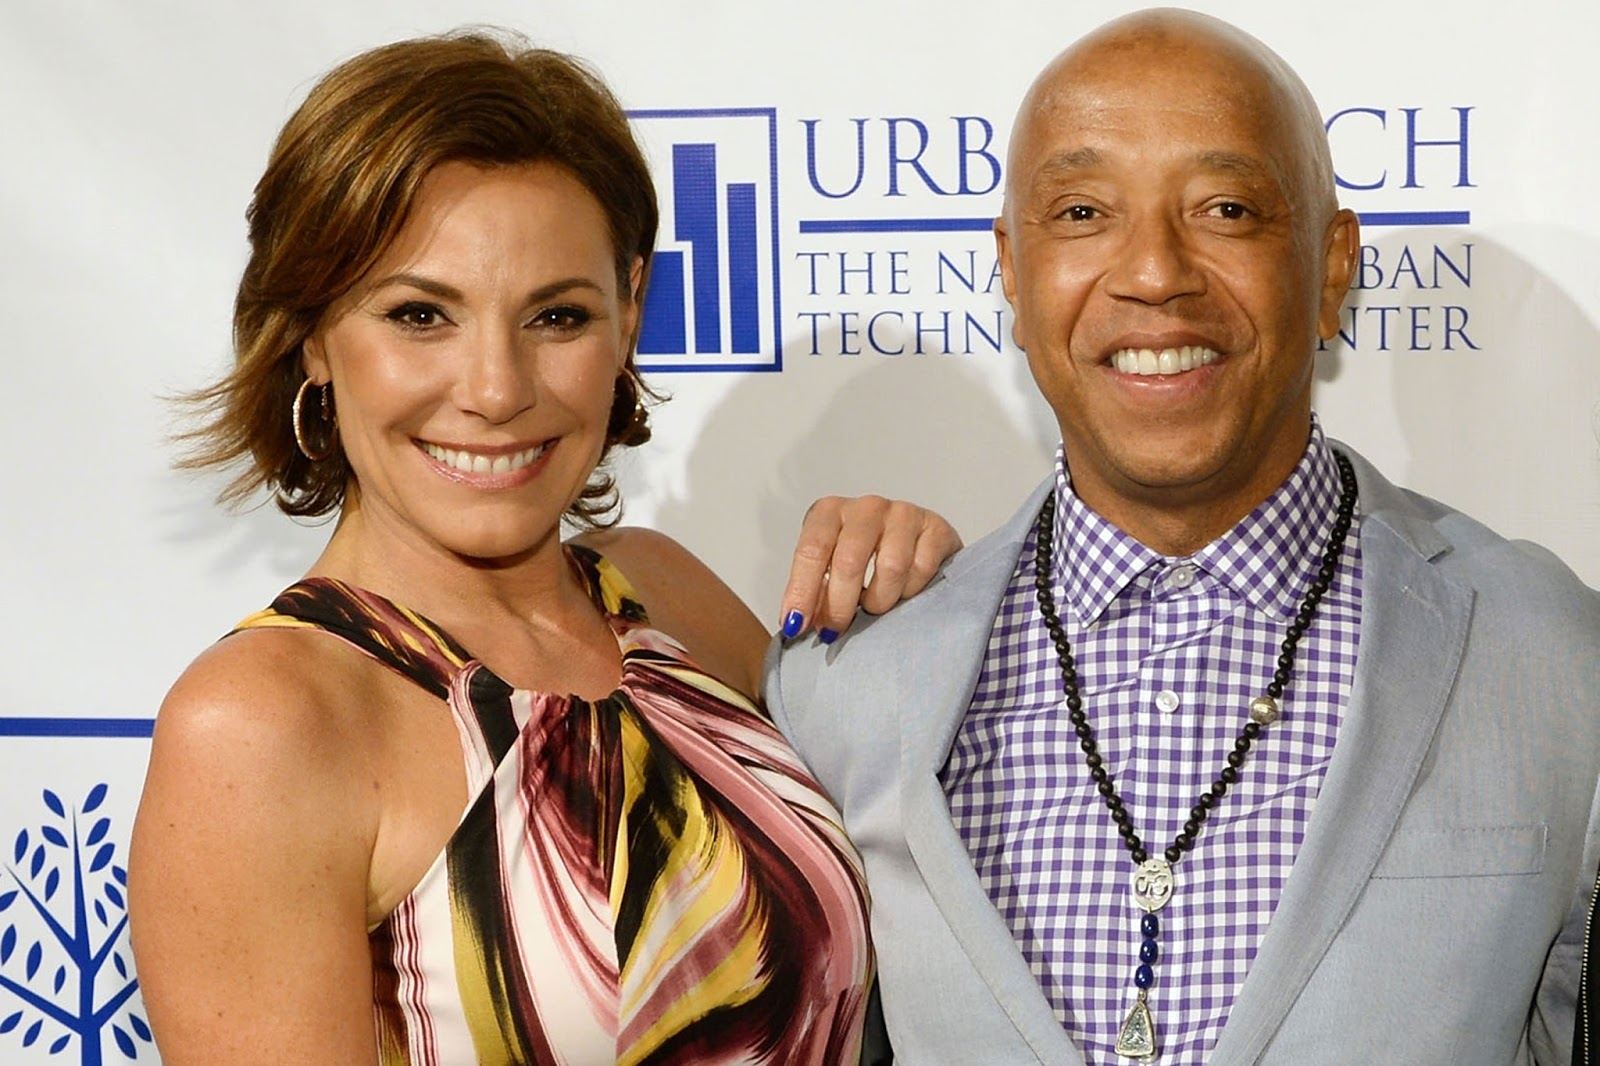 b7da760055878 Russell Simmons is being accused of groping a BRAVO reality star several  years ago. Real Housewives of New York's Luanna de Lesseps claimed in an  interview ...